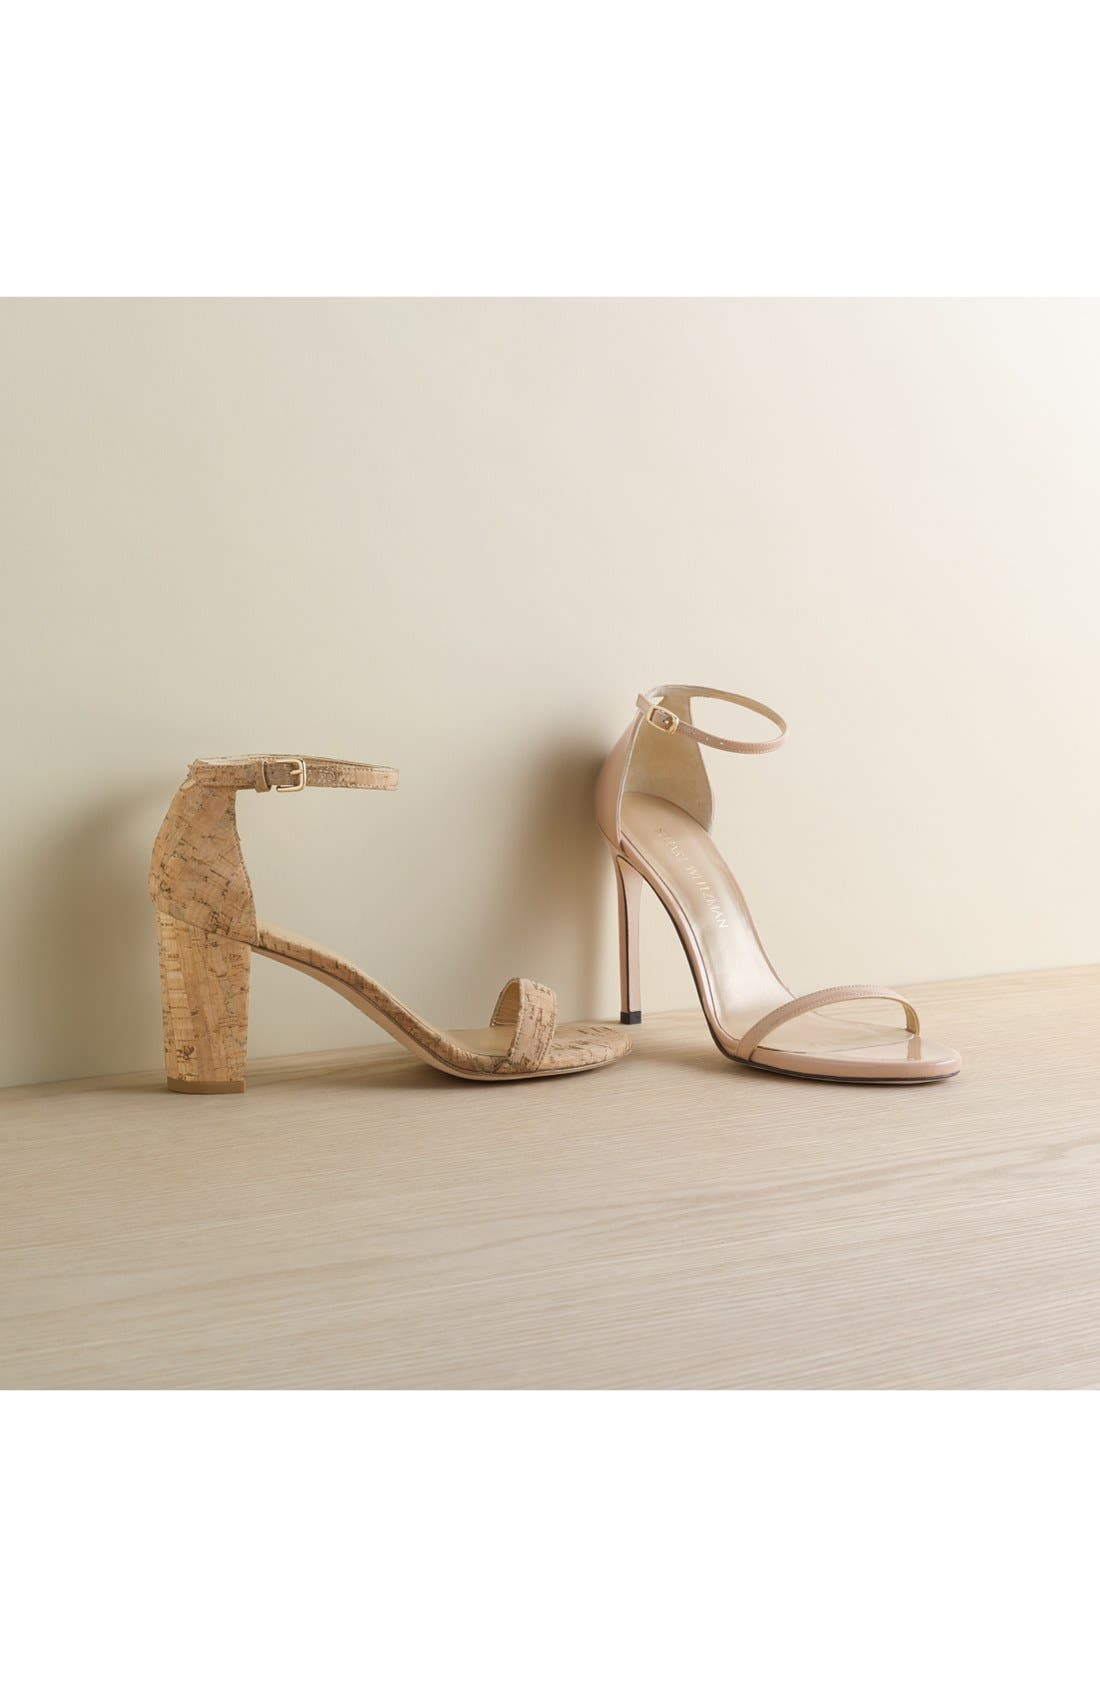 NearlyNude Ankle Strap Sandal,                             Alternate thumbnail 3, color,